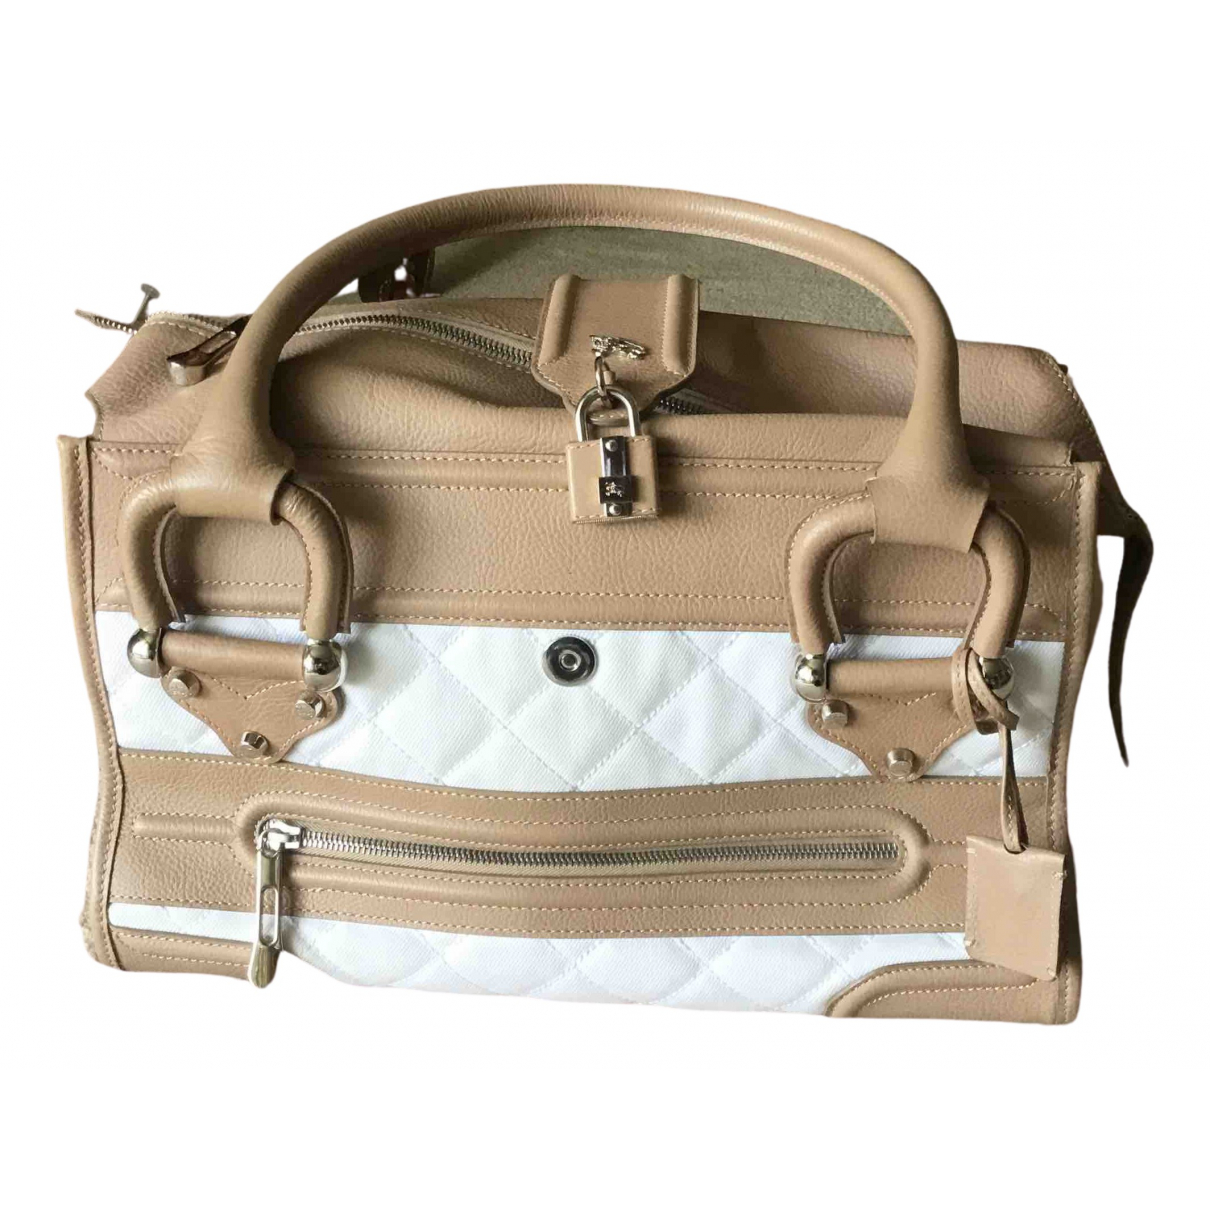 Burberry \N Beige Leather handbag for Women \N